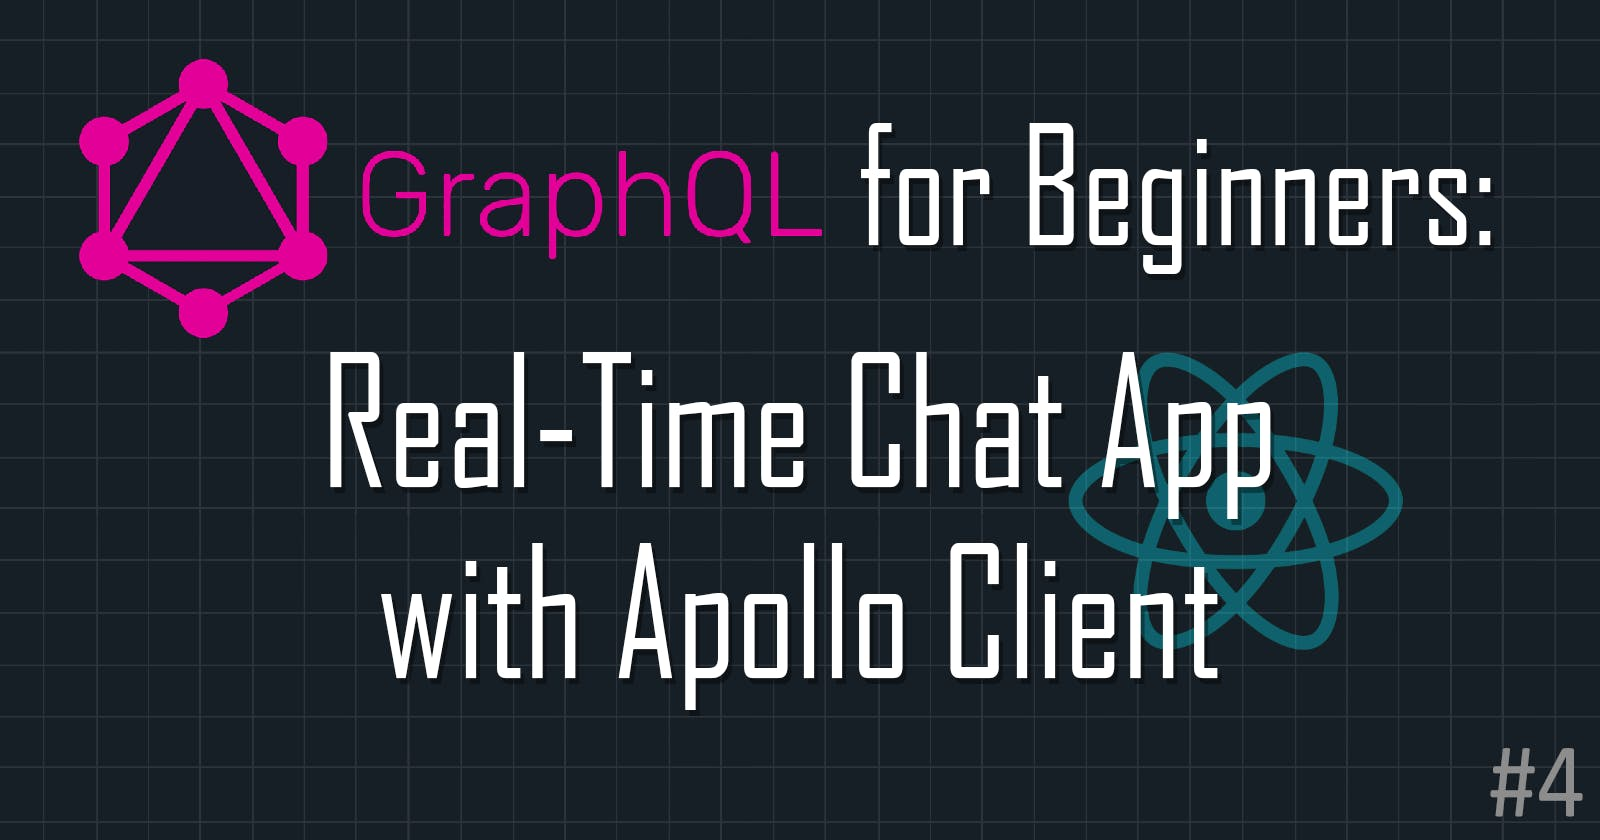 GraphQL for Beginners: Build Real-Time Chat App with Apollo Client and React